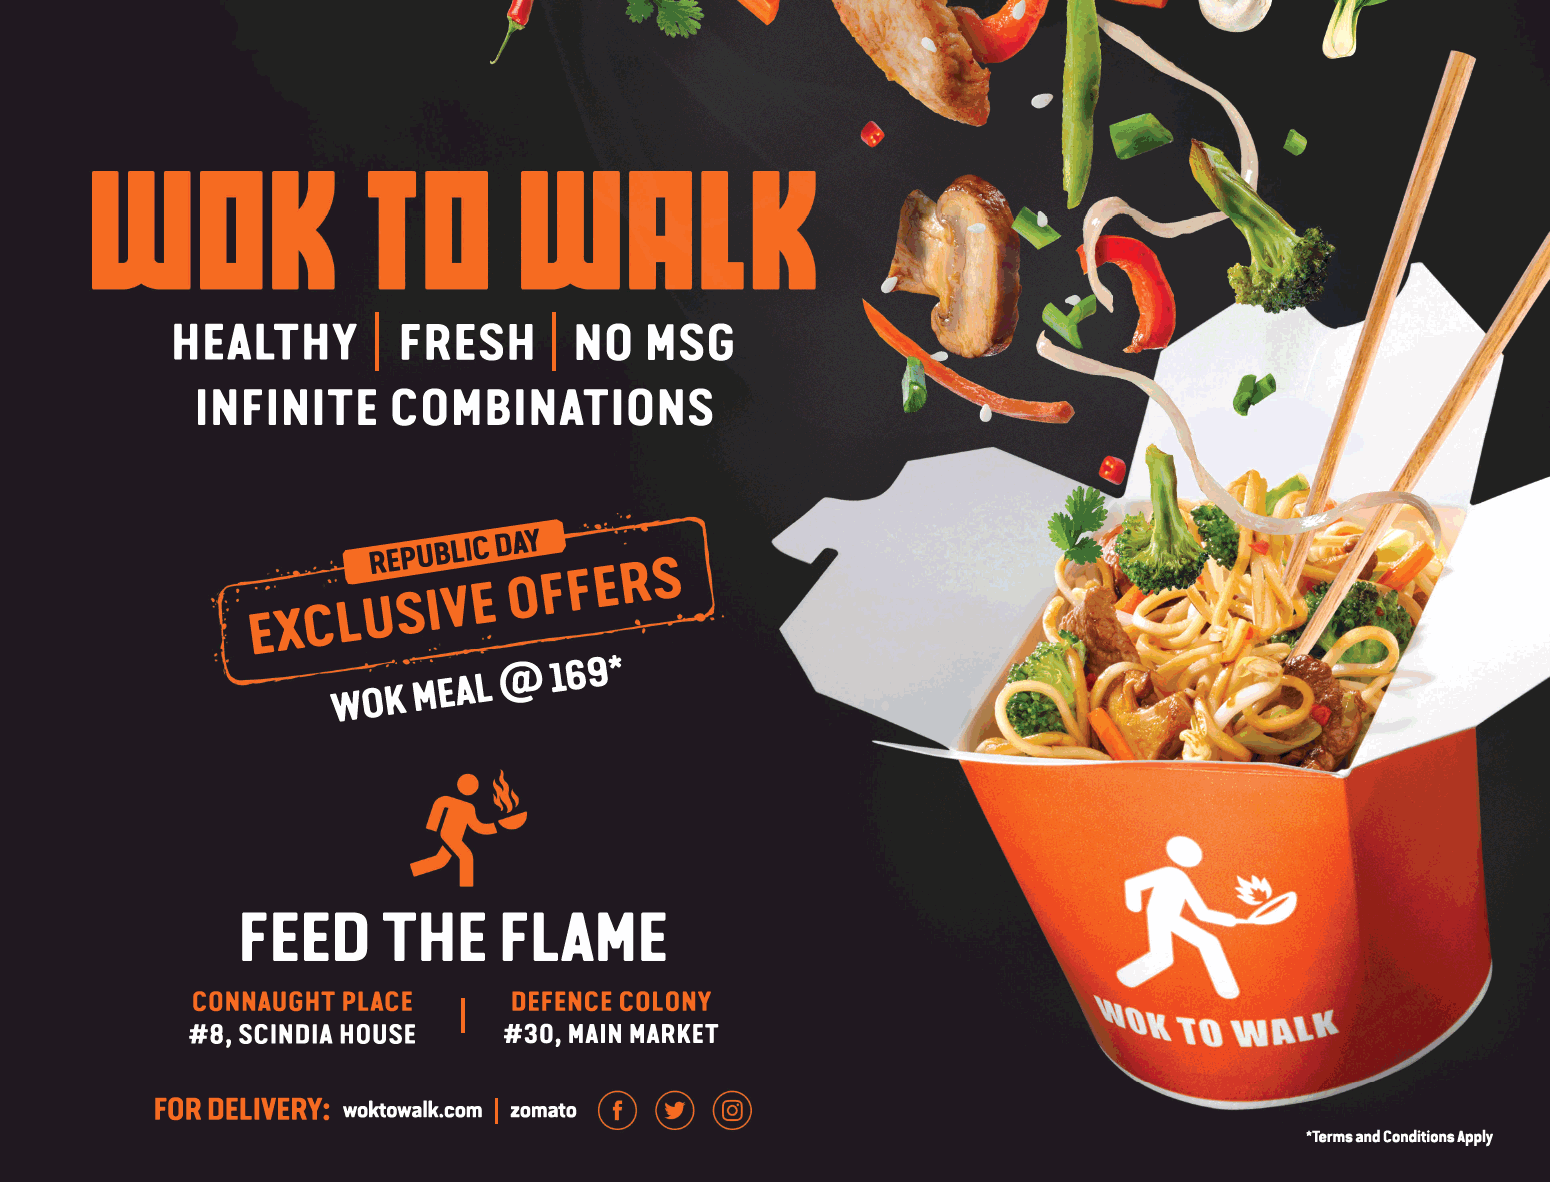 Wok To Walk Republic Day Exclusive Offers Wok Meal At 169 Ad Delhi Times Check Out More Hotels Restaurants Advertisement Advert Wok China Wok Republic Day